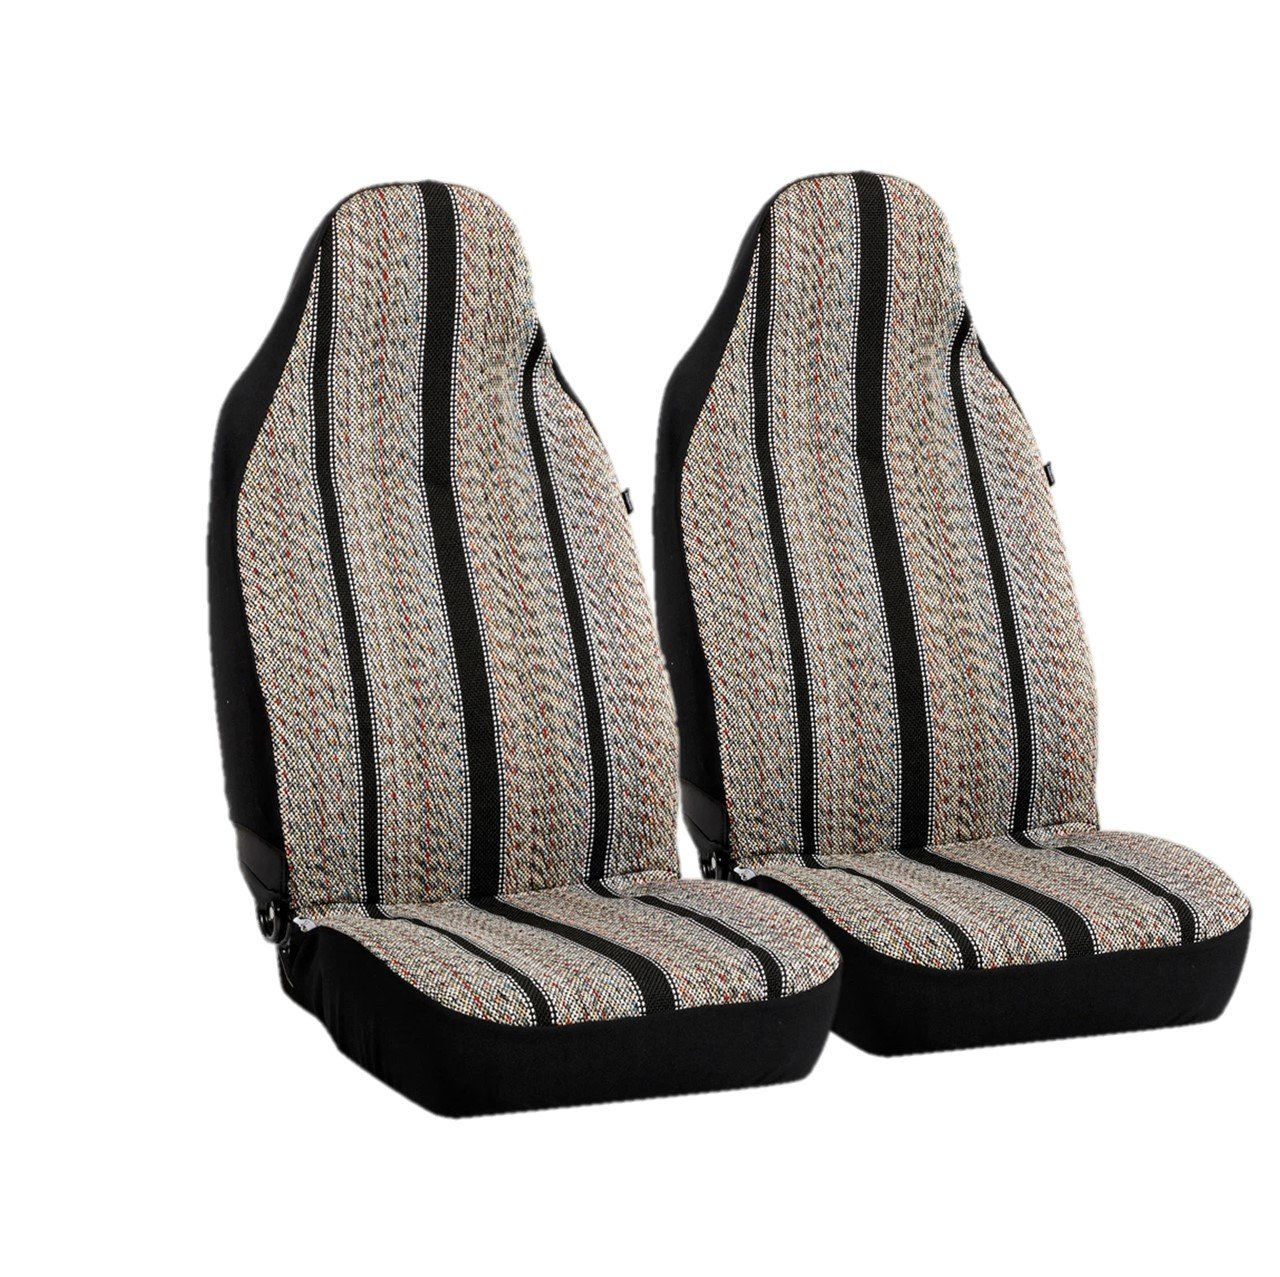 2PCS SUV PICAUTO Baja Blanket Bucket Seat Cover for Car Airbag Compatible PIC AUTO Van Truck